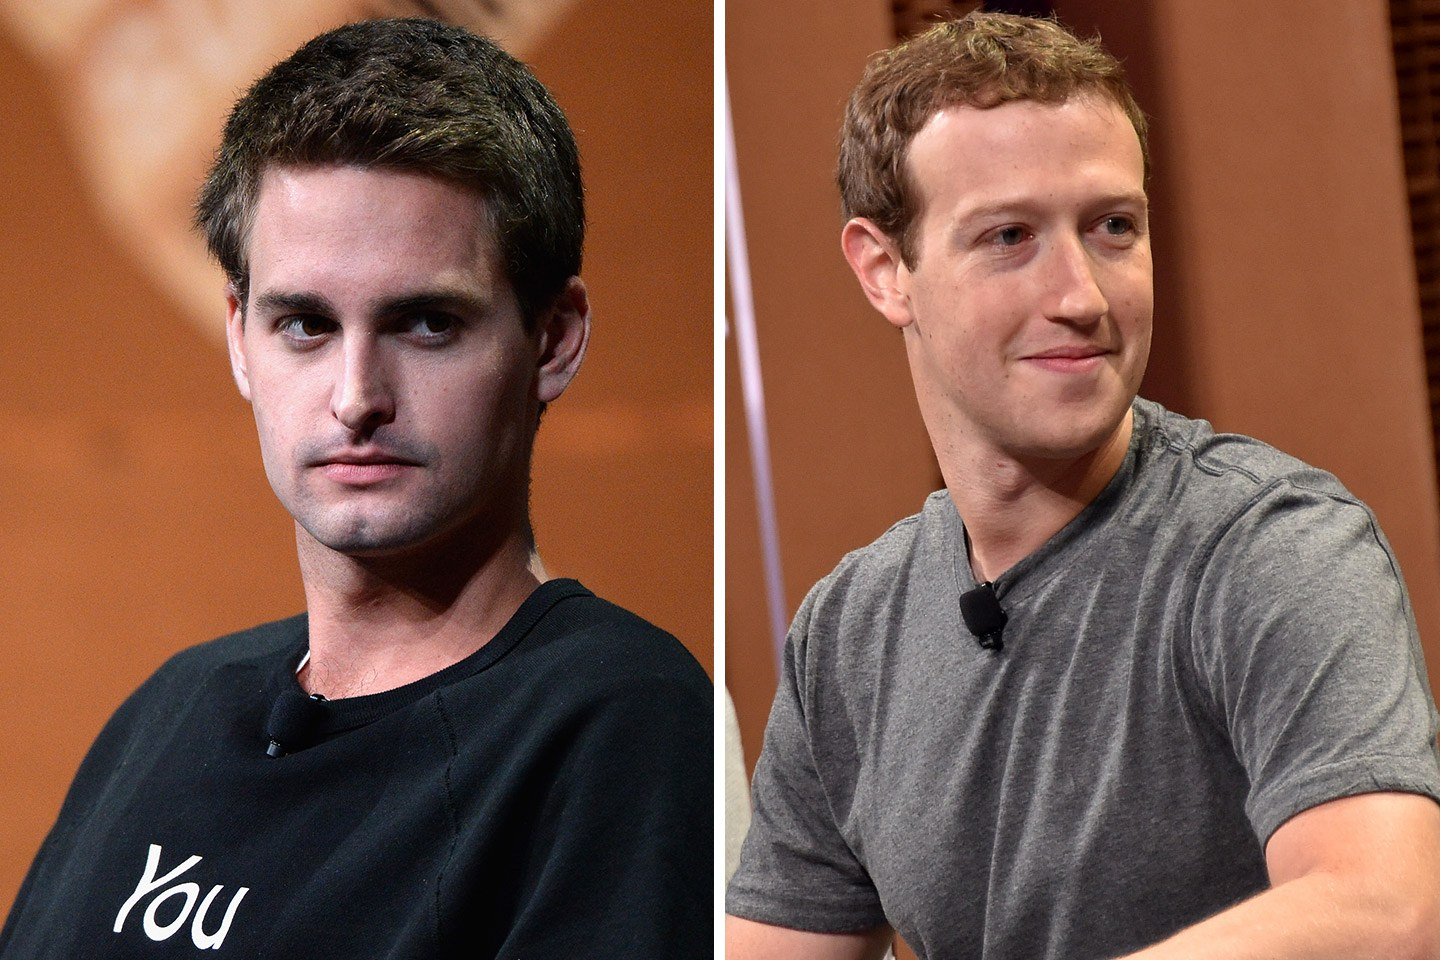 """In what could have been the ultimate (fire) sale: SnapChat CEO & Founder Eric Spiegel (pictured left) refused Facebook CEO Mark Zuckerberg's offer to buy SnapChat for $3 billion in 2013. As of February 2016, SnapChat's current valuation     is $16 billion .  Know your value, and stand by it - say """"NO."""""""